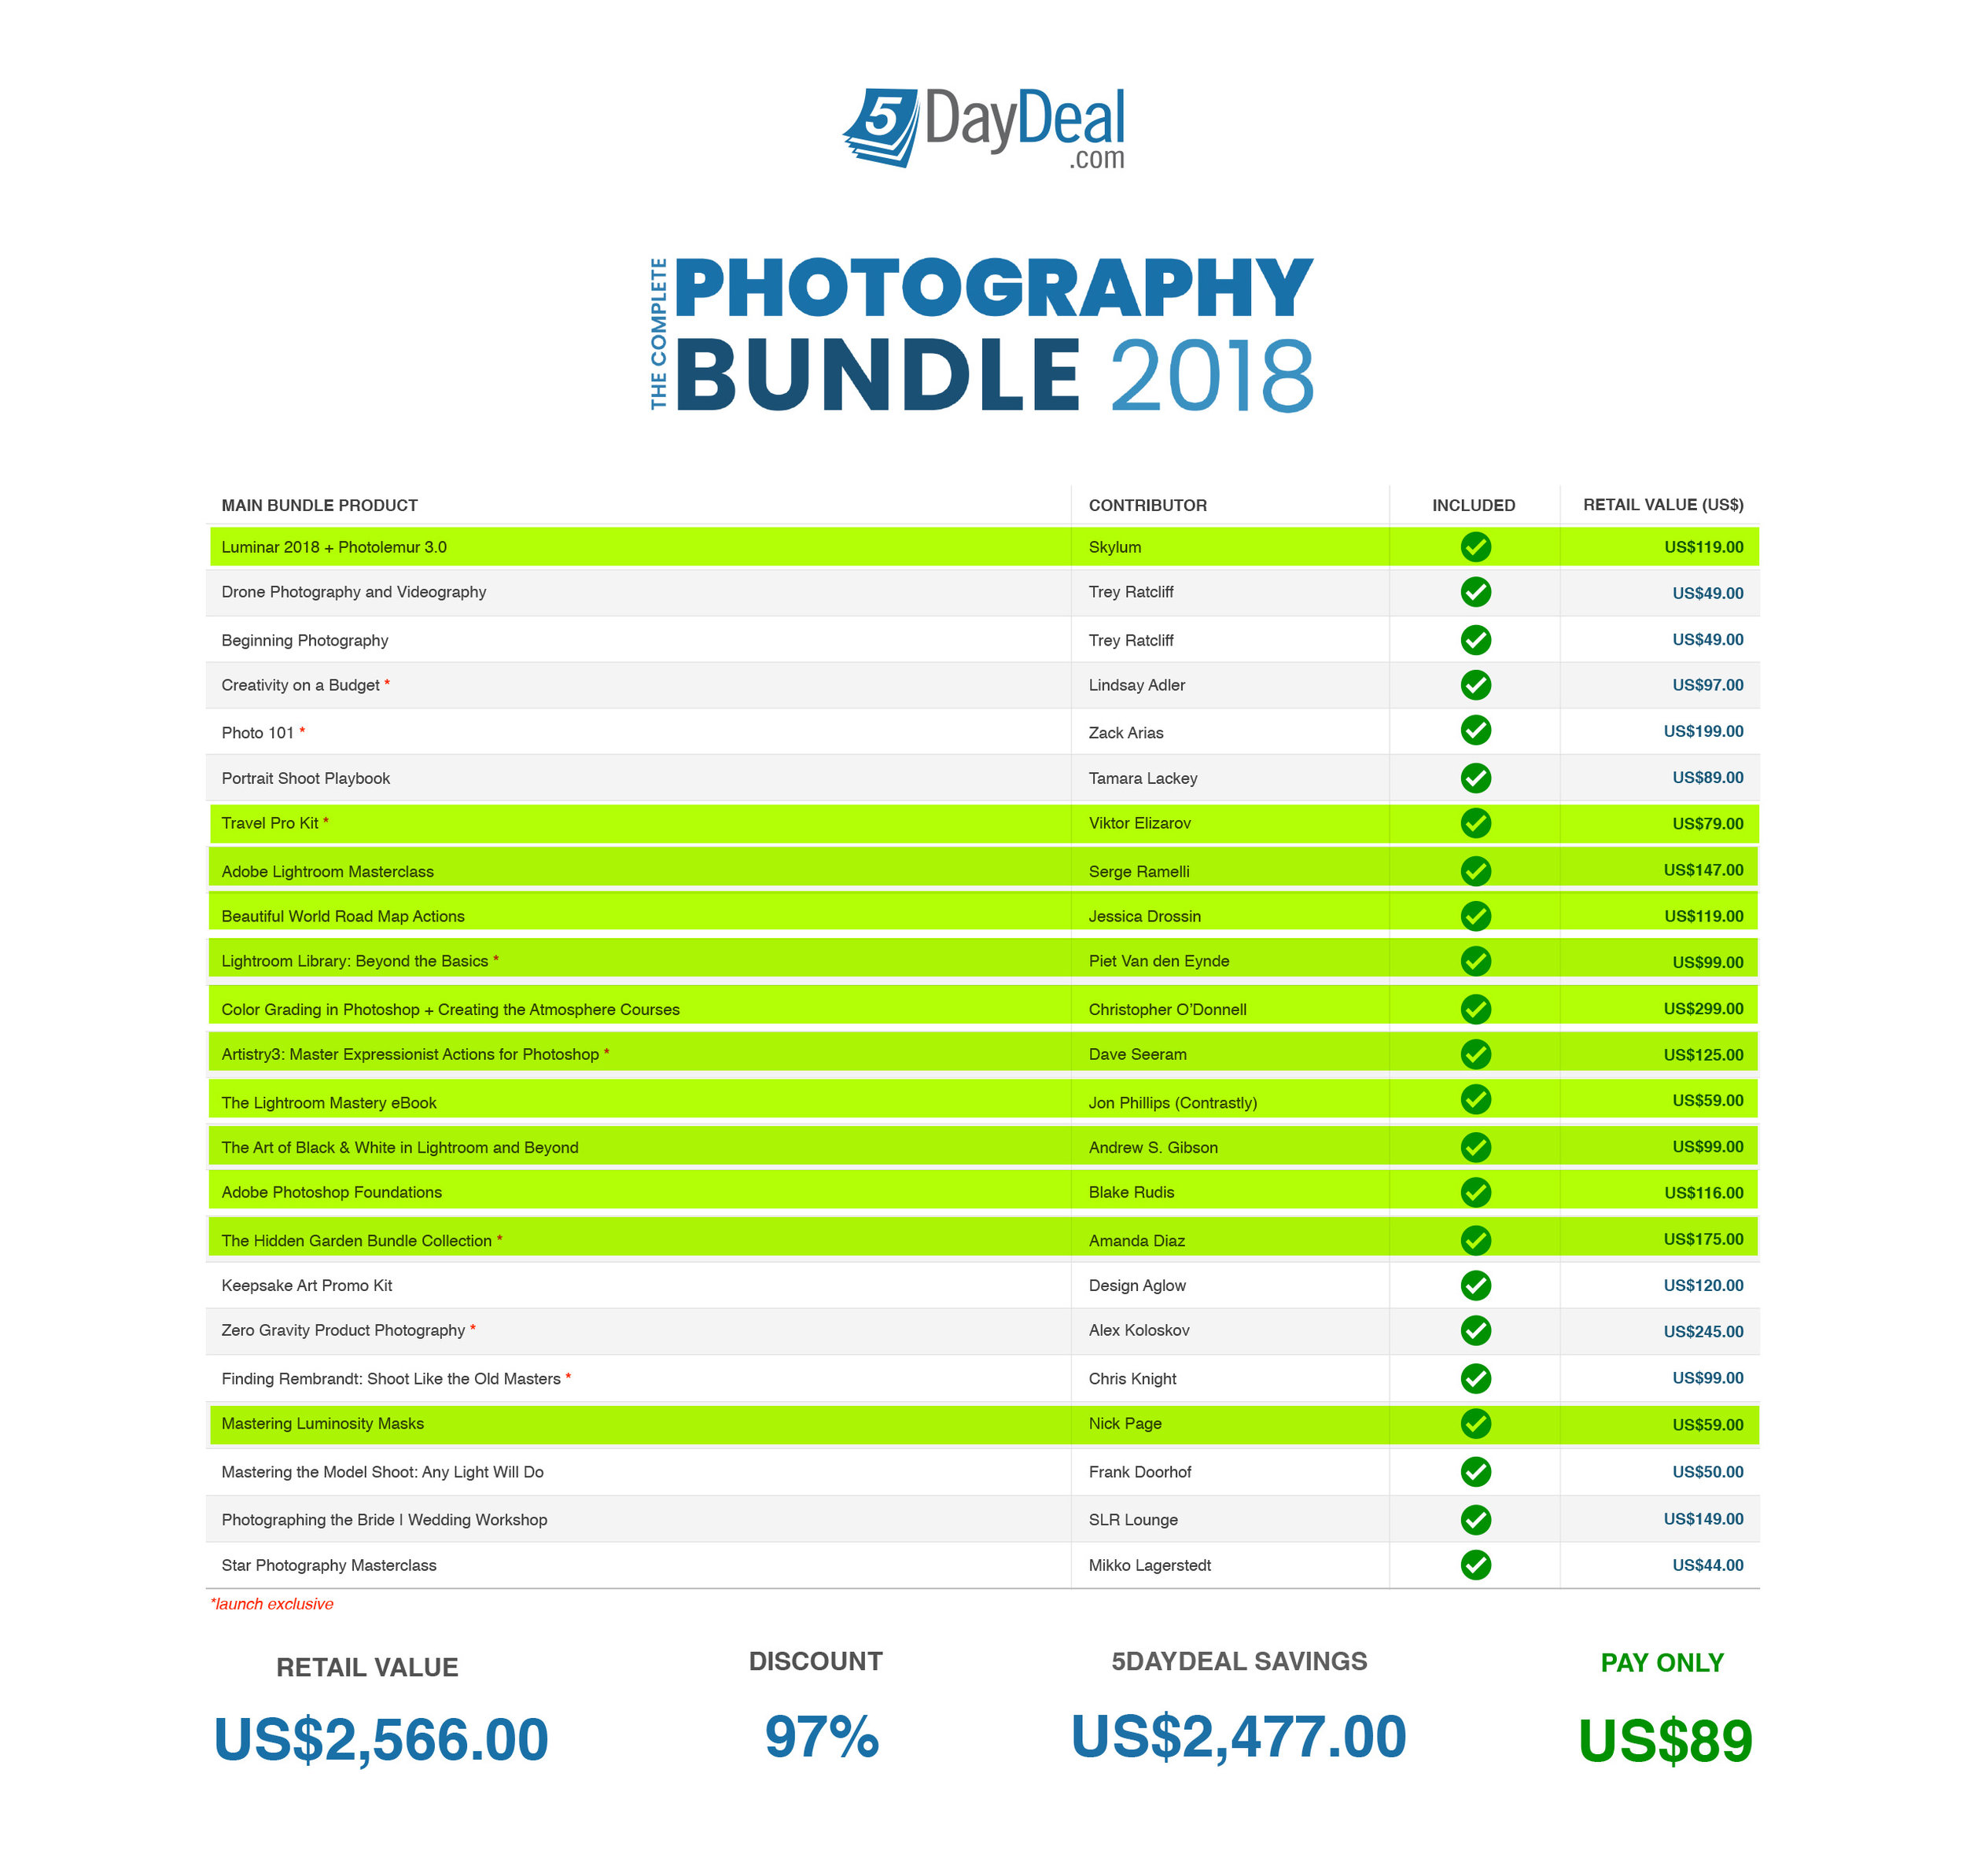 The total value of the highlighted items alone is $1495. The full bundle is yours for less than a tenth of that.